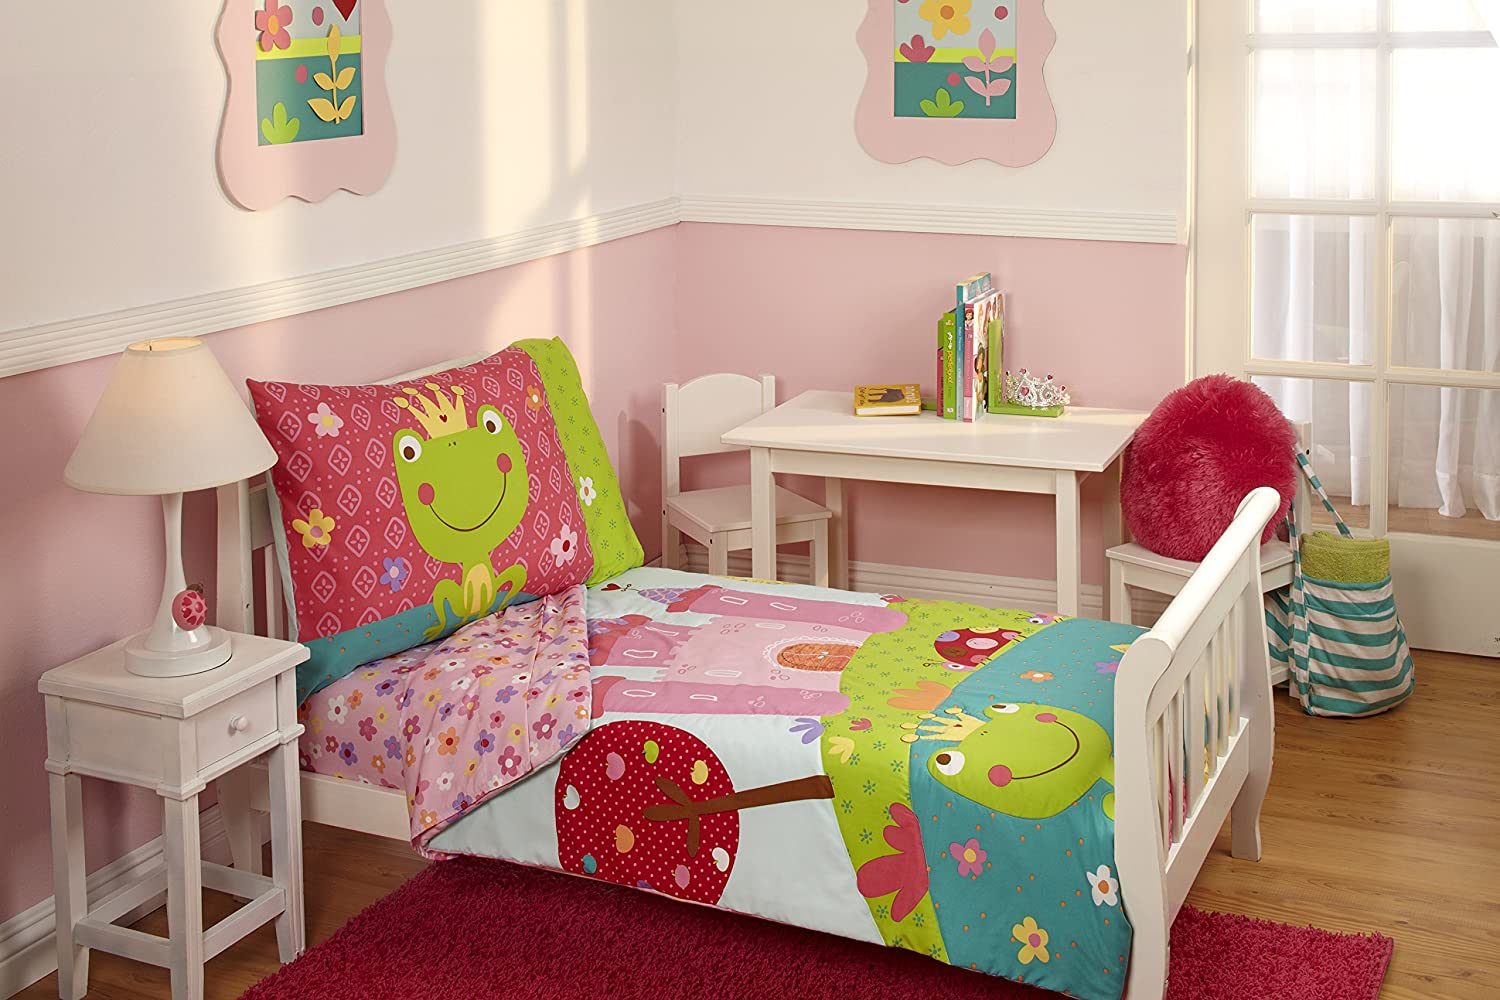 Everything Kids Toddler Bedding Set  Fairytale. Beautiful Frog Bedroom Decor Ideas for Frog Lovers